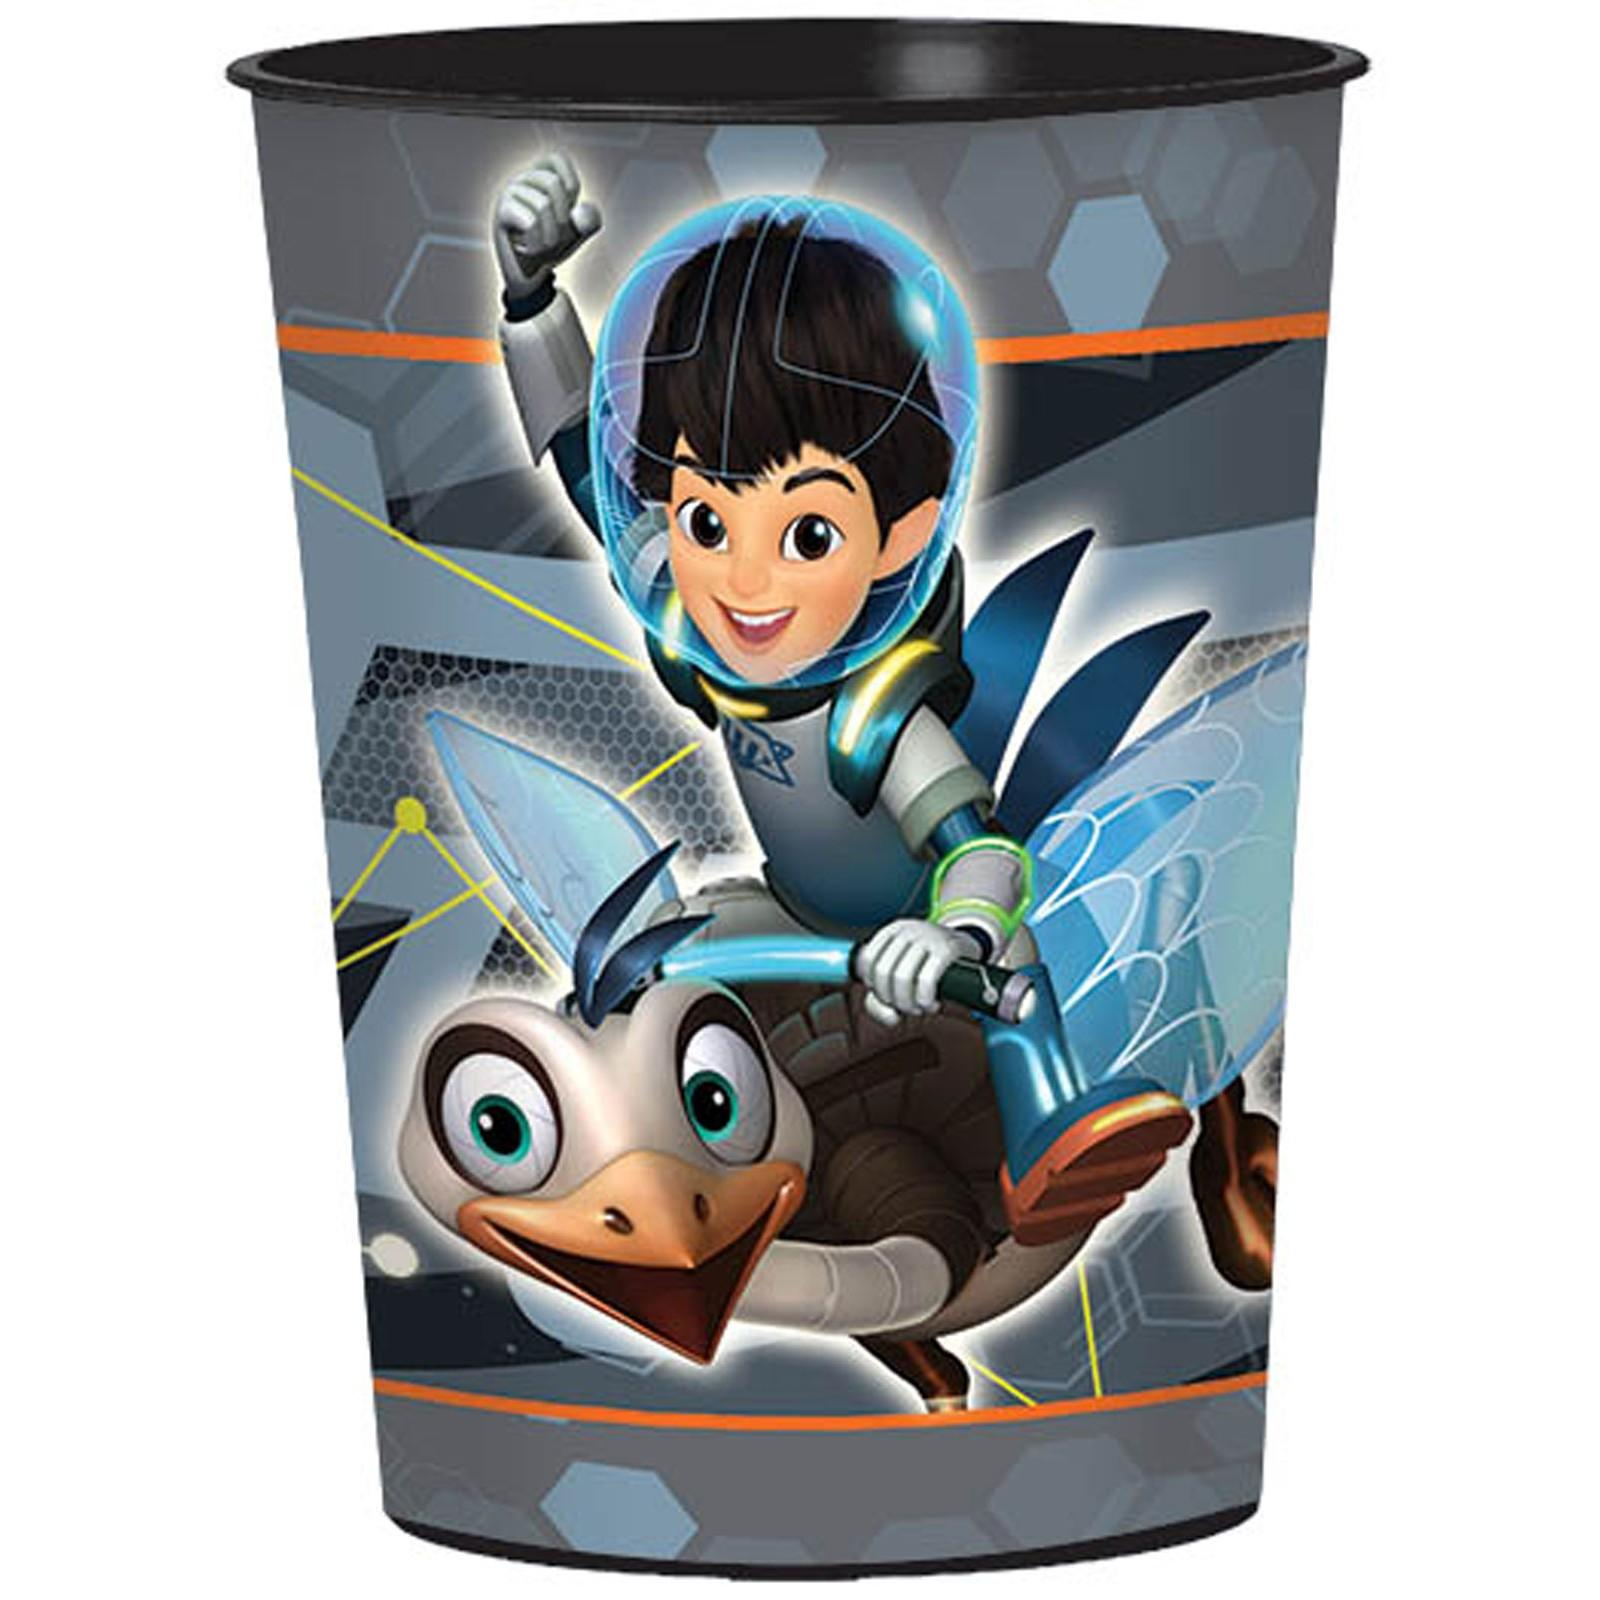 Miles from Tomorrowland 16 oz. Plastic Party Cup, Party Supplies